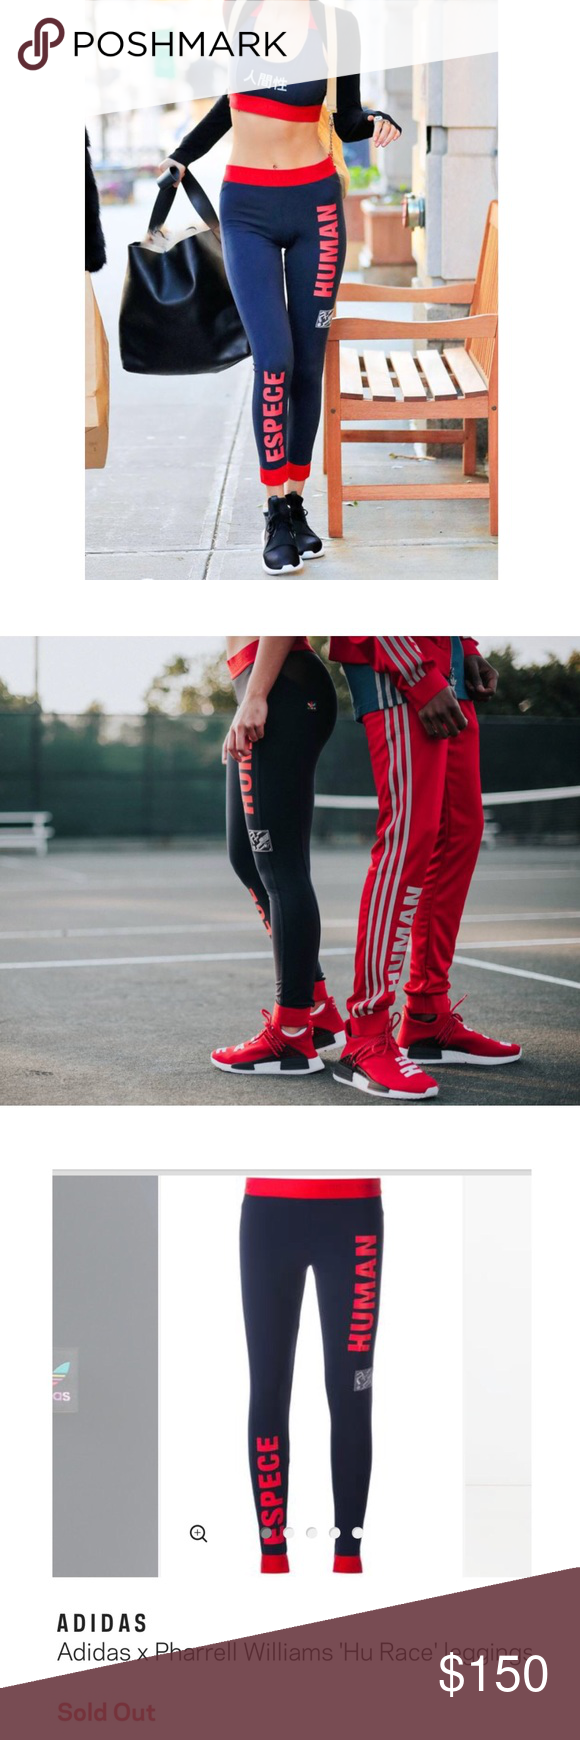 5eb2df8706596 NWT Adidas x Pharrell Williams 'Hu Race' leggings Adidas x Pharrell Williams  'Hu Race' leggings My husband bought these for me last year from exclusive  ...